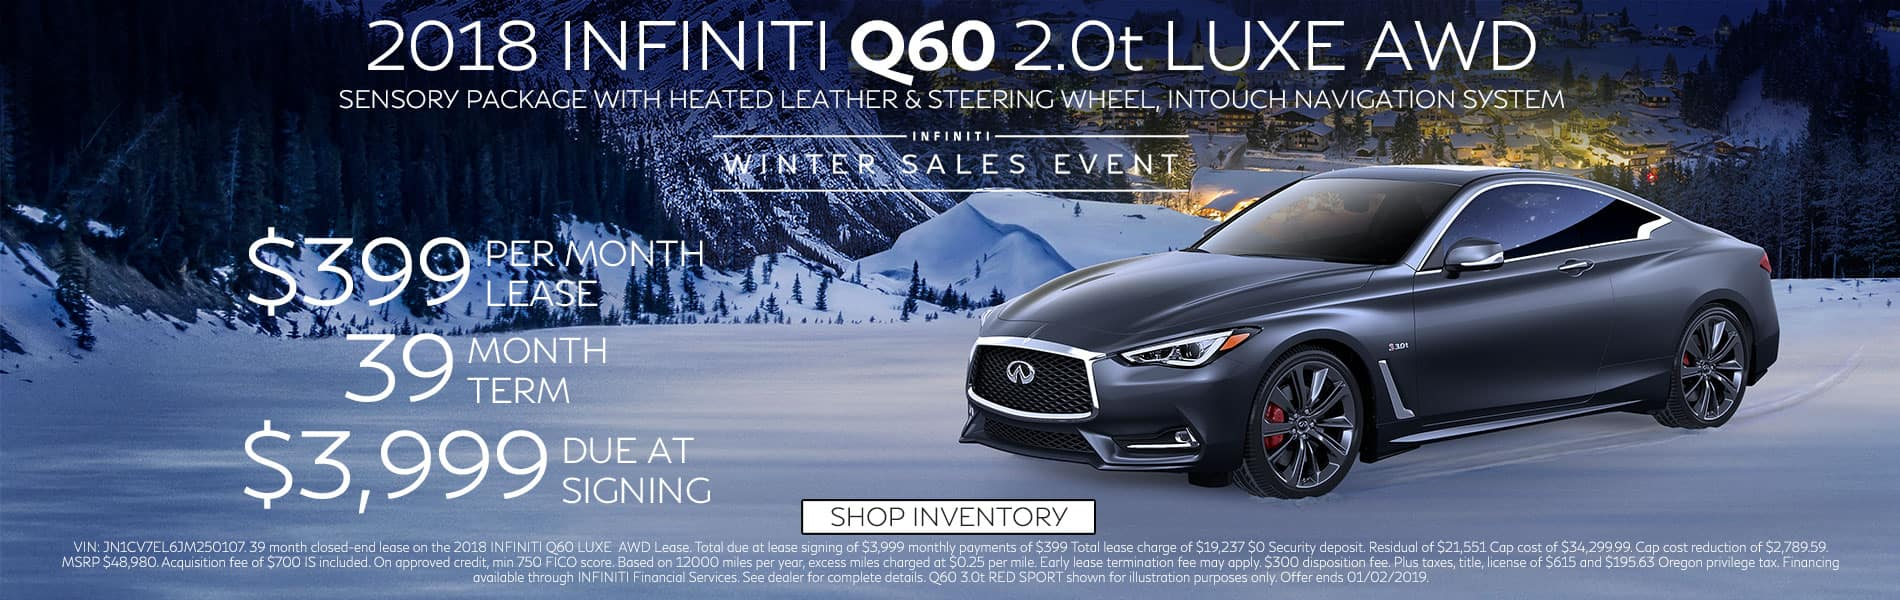 Lease a 2018 Q60 2.0t LUXE AWD for $399 per month with $3,999 due at signing